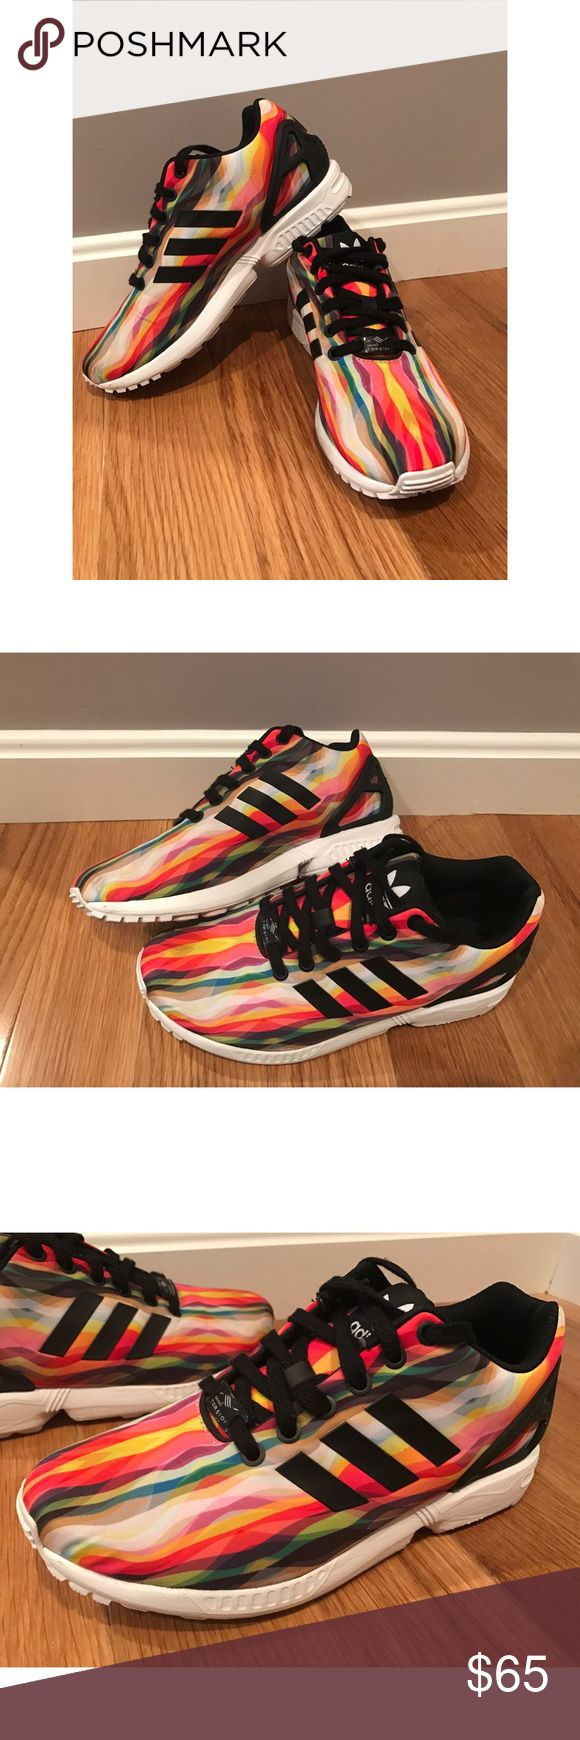 Adidas ZX Flux Torsion Shoes - READ FOR SIZE! Adidas Women's ZX Flux Torsion Shoes. Size 7, but they run large and are more like a size 8. I'm normally an 8 in shoes and these fit me perfect. They've only been worn once! I have far too many shoes and these are just collecting dust. This print is hard to find! I do not have the box anymore. From a smoke-free home as well. No trades! Price is firm! Adidas Shoes Athletic Shoes